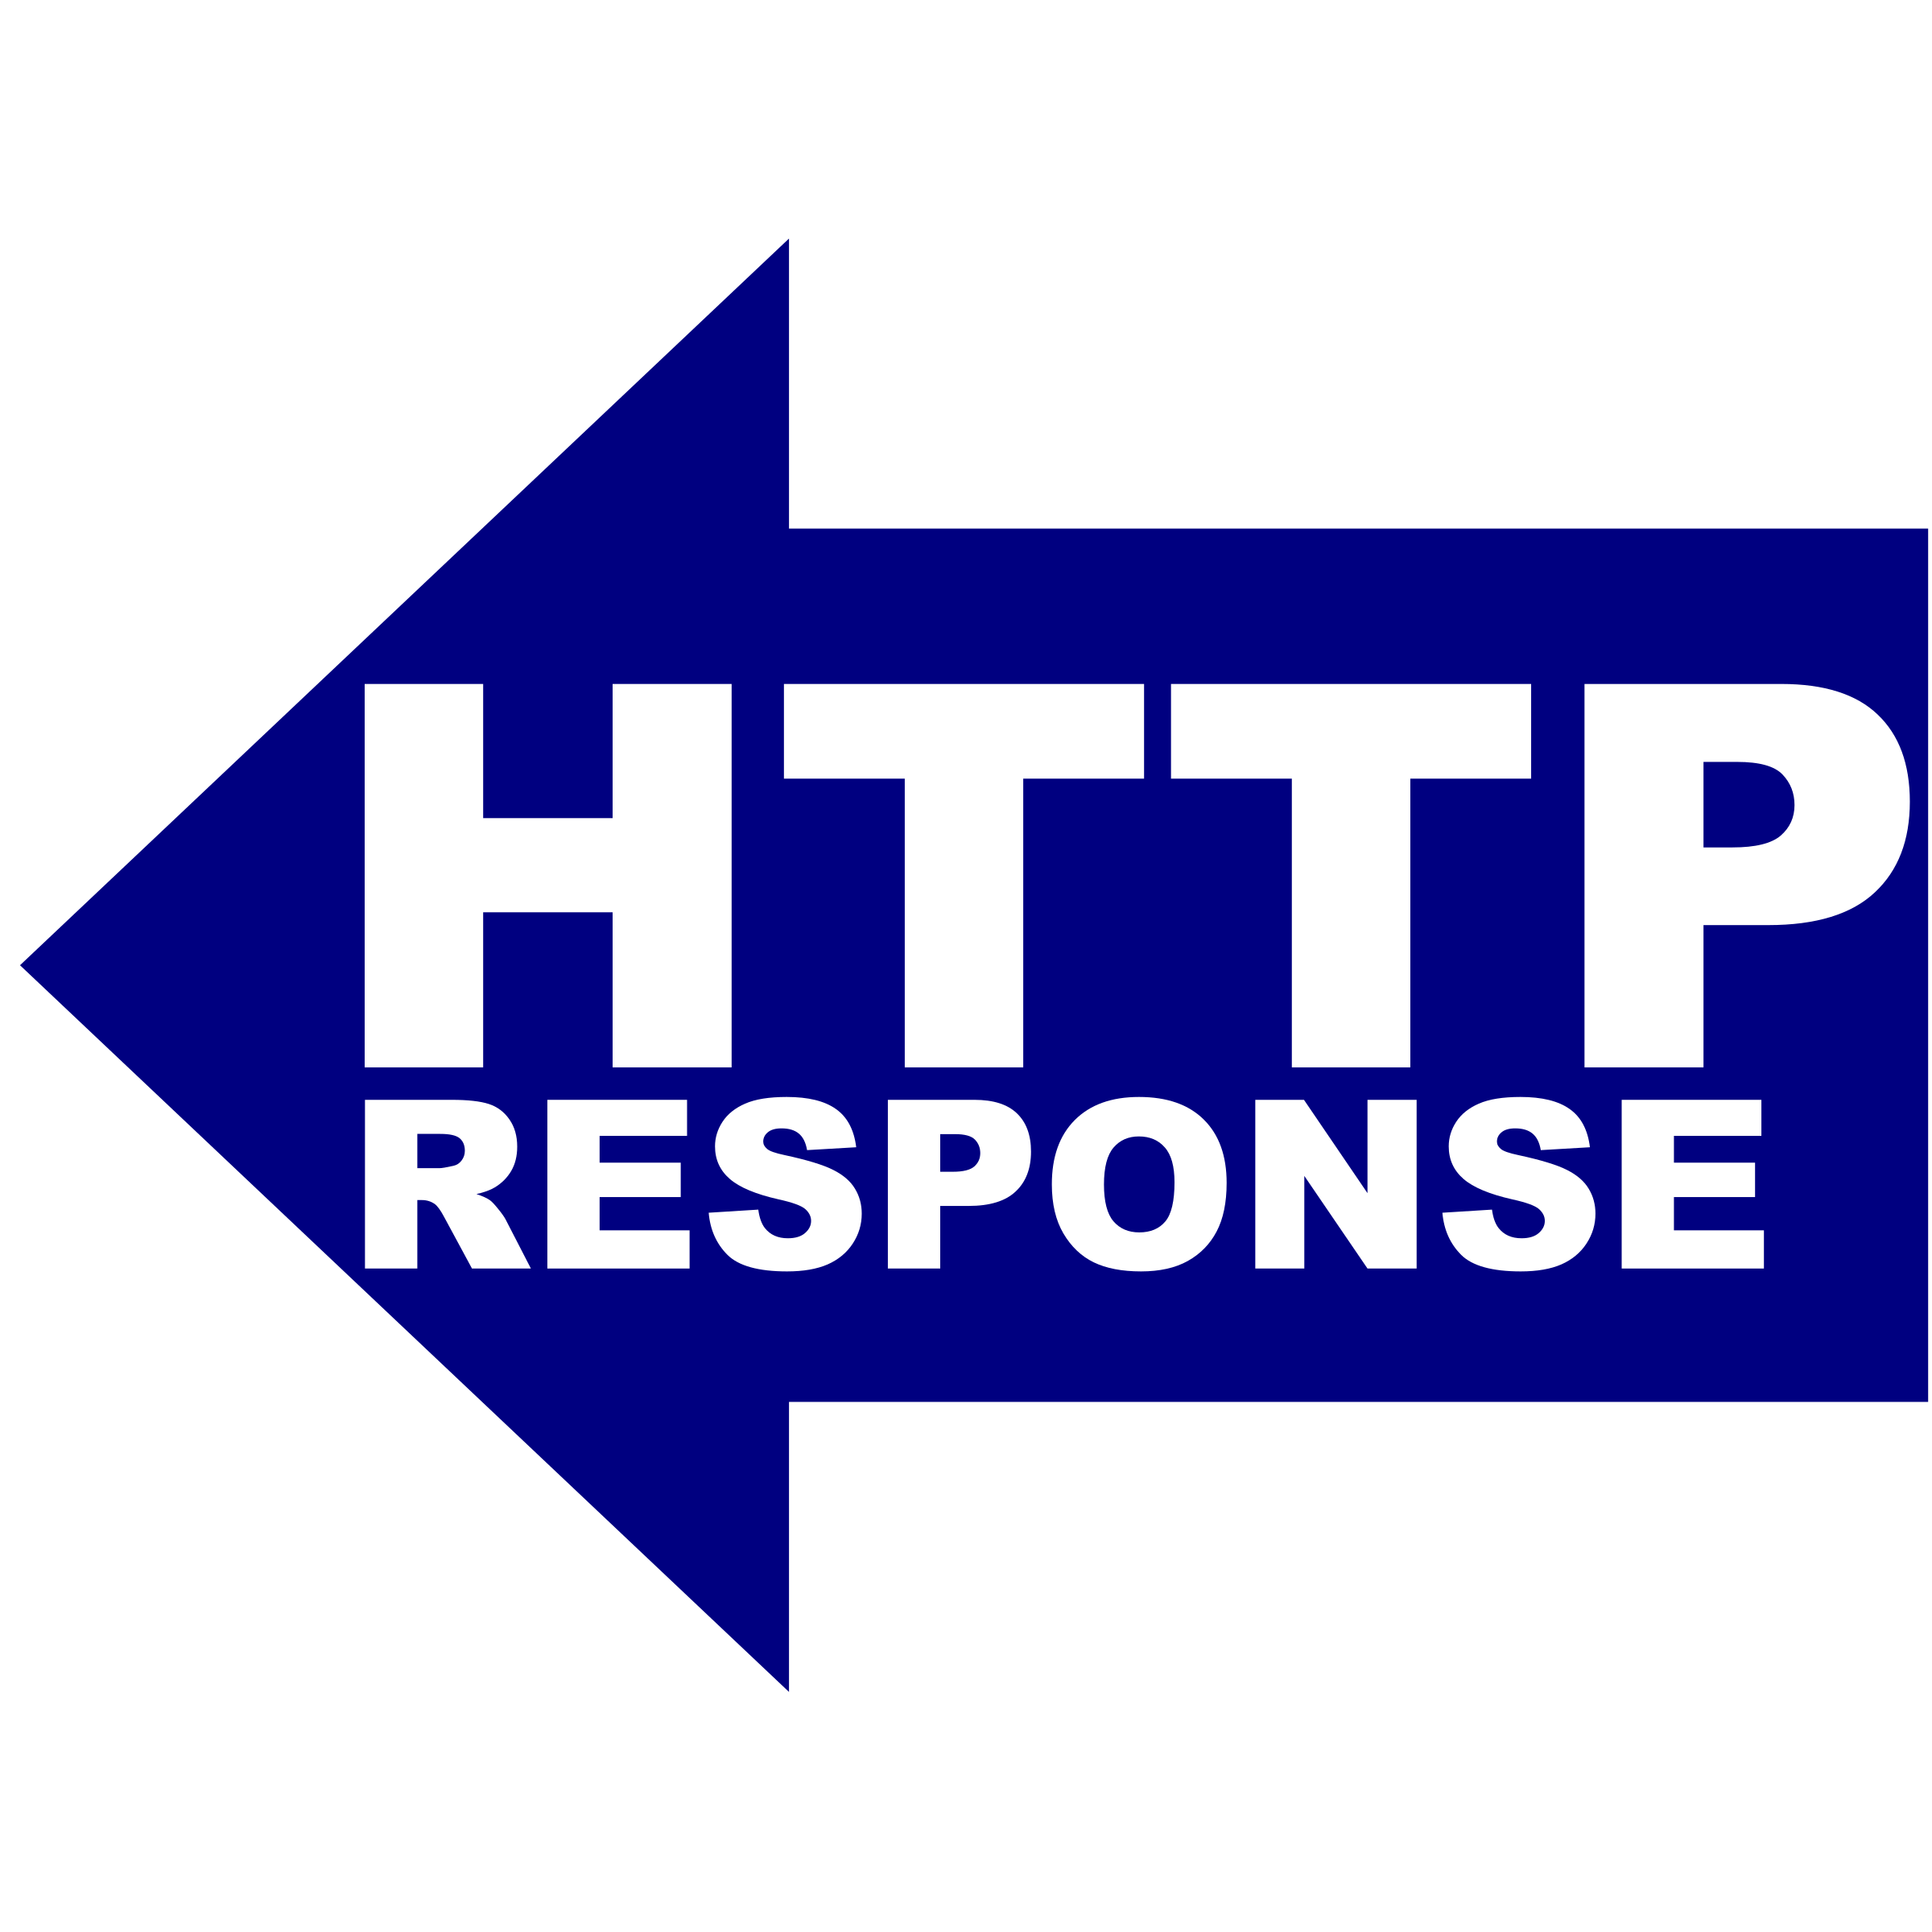 http response by computating